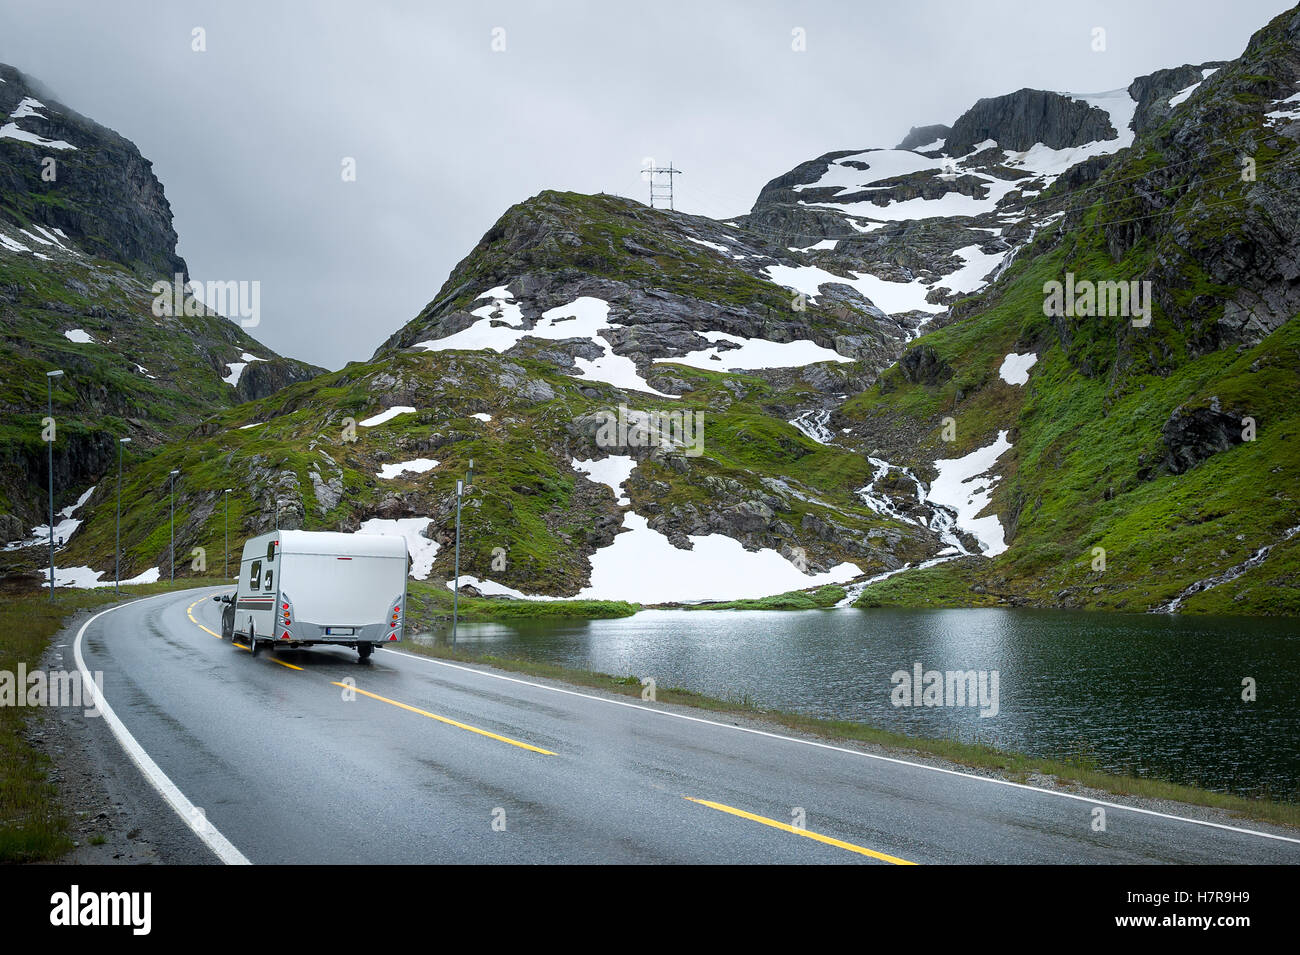 Camper traveling at scenic norwegian road in the mountains. - Stock Image